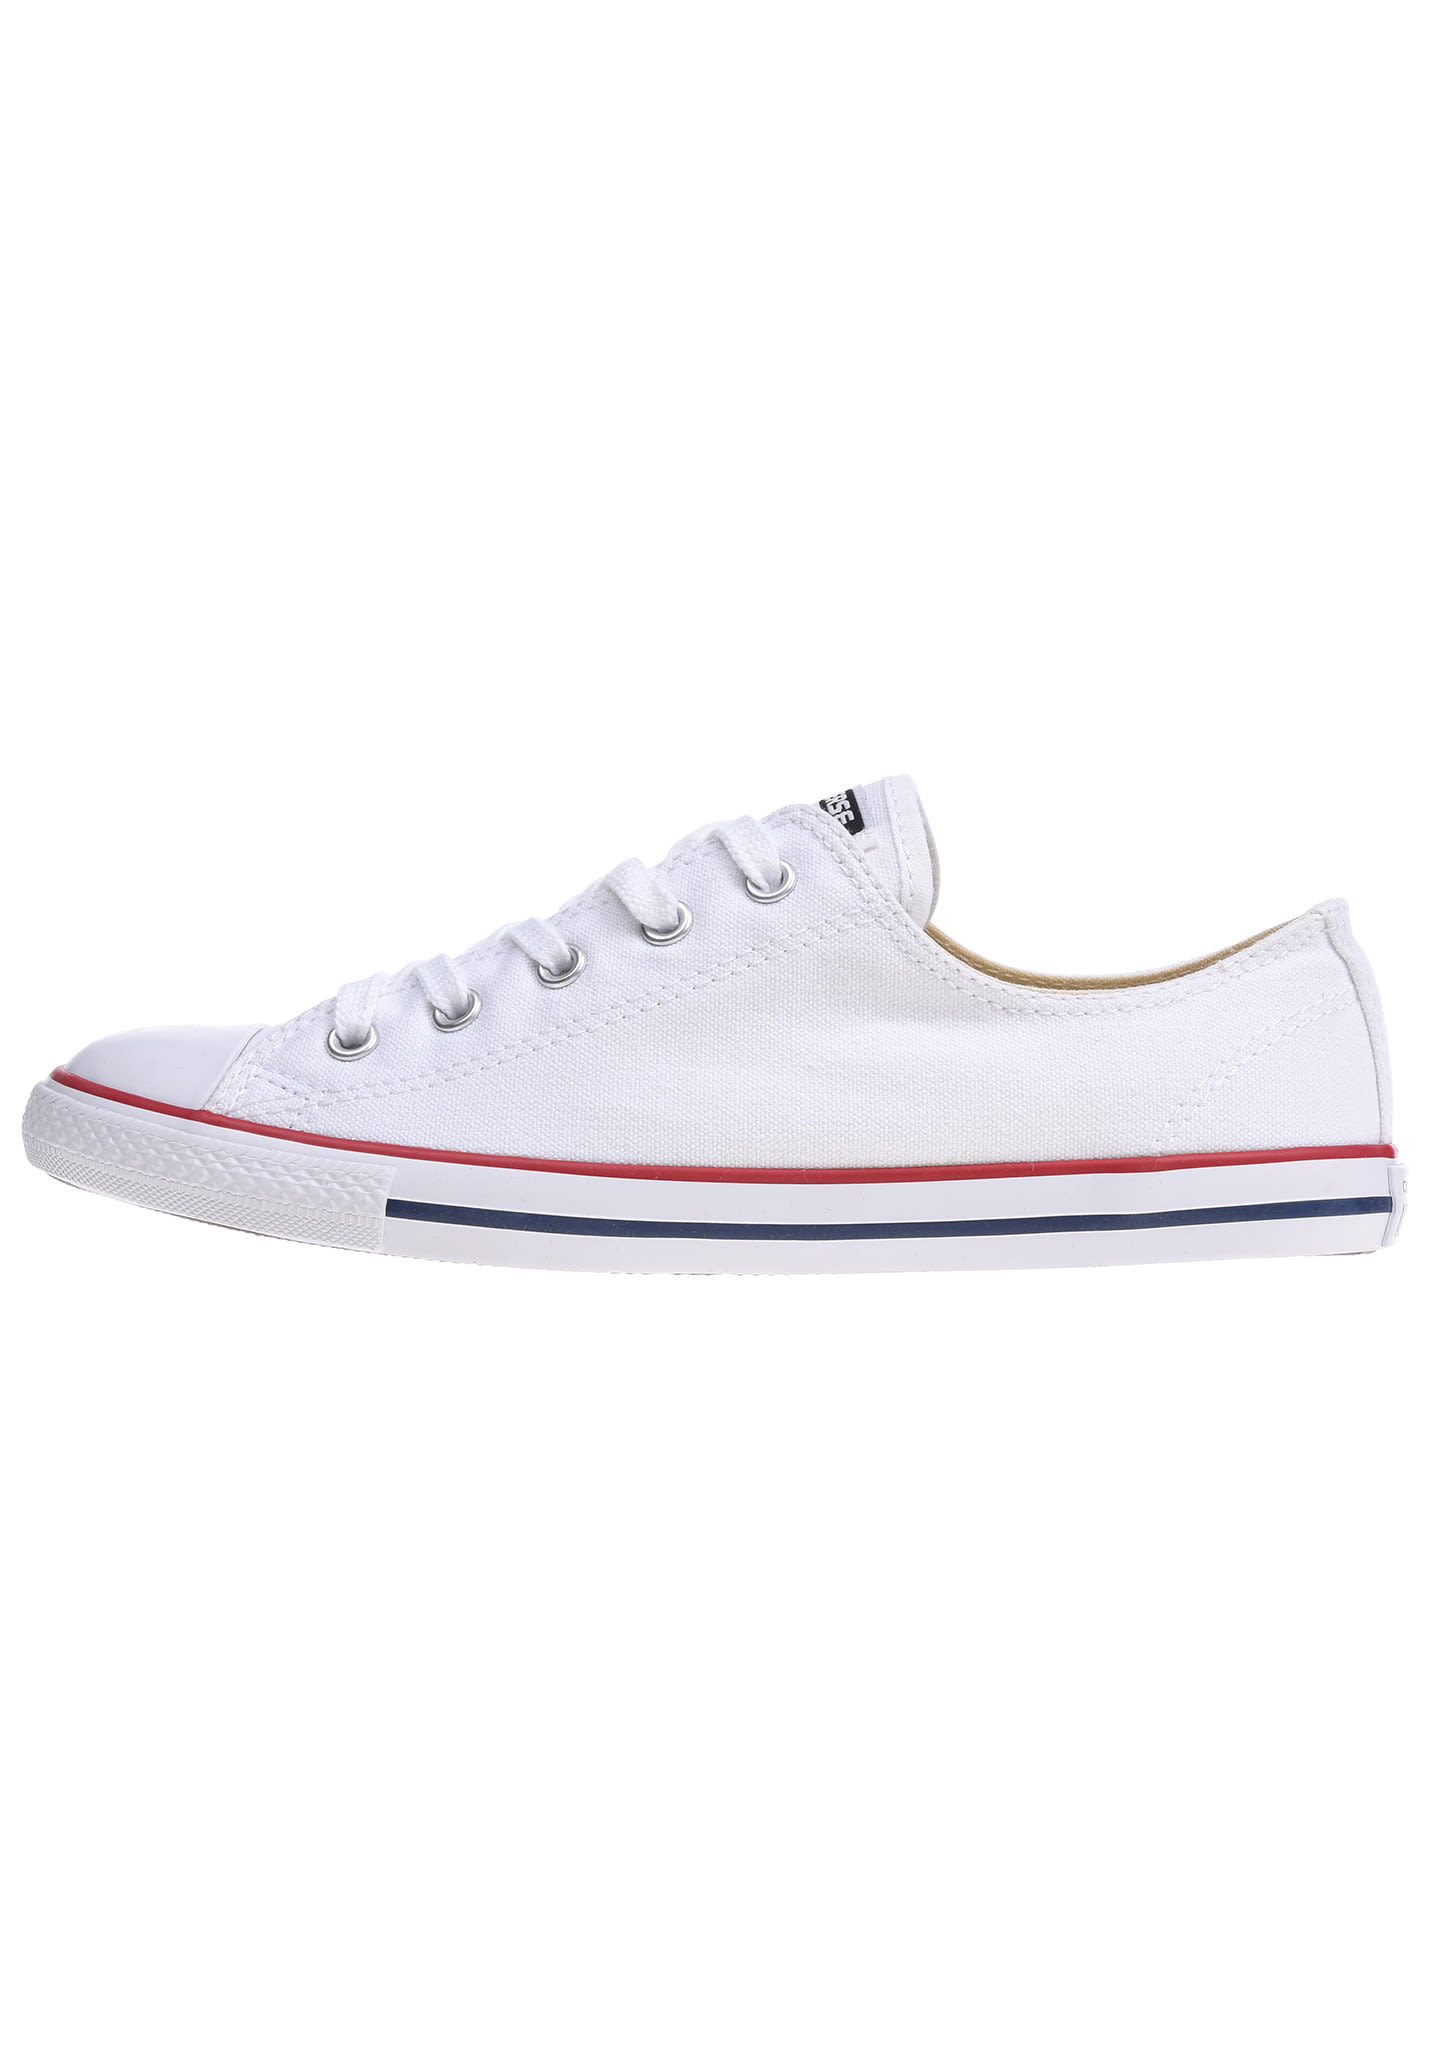 Converse CT All Star Dainty OX Damen-Sneaker Casino/Gold/White 40